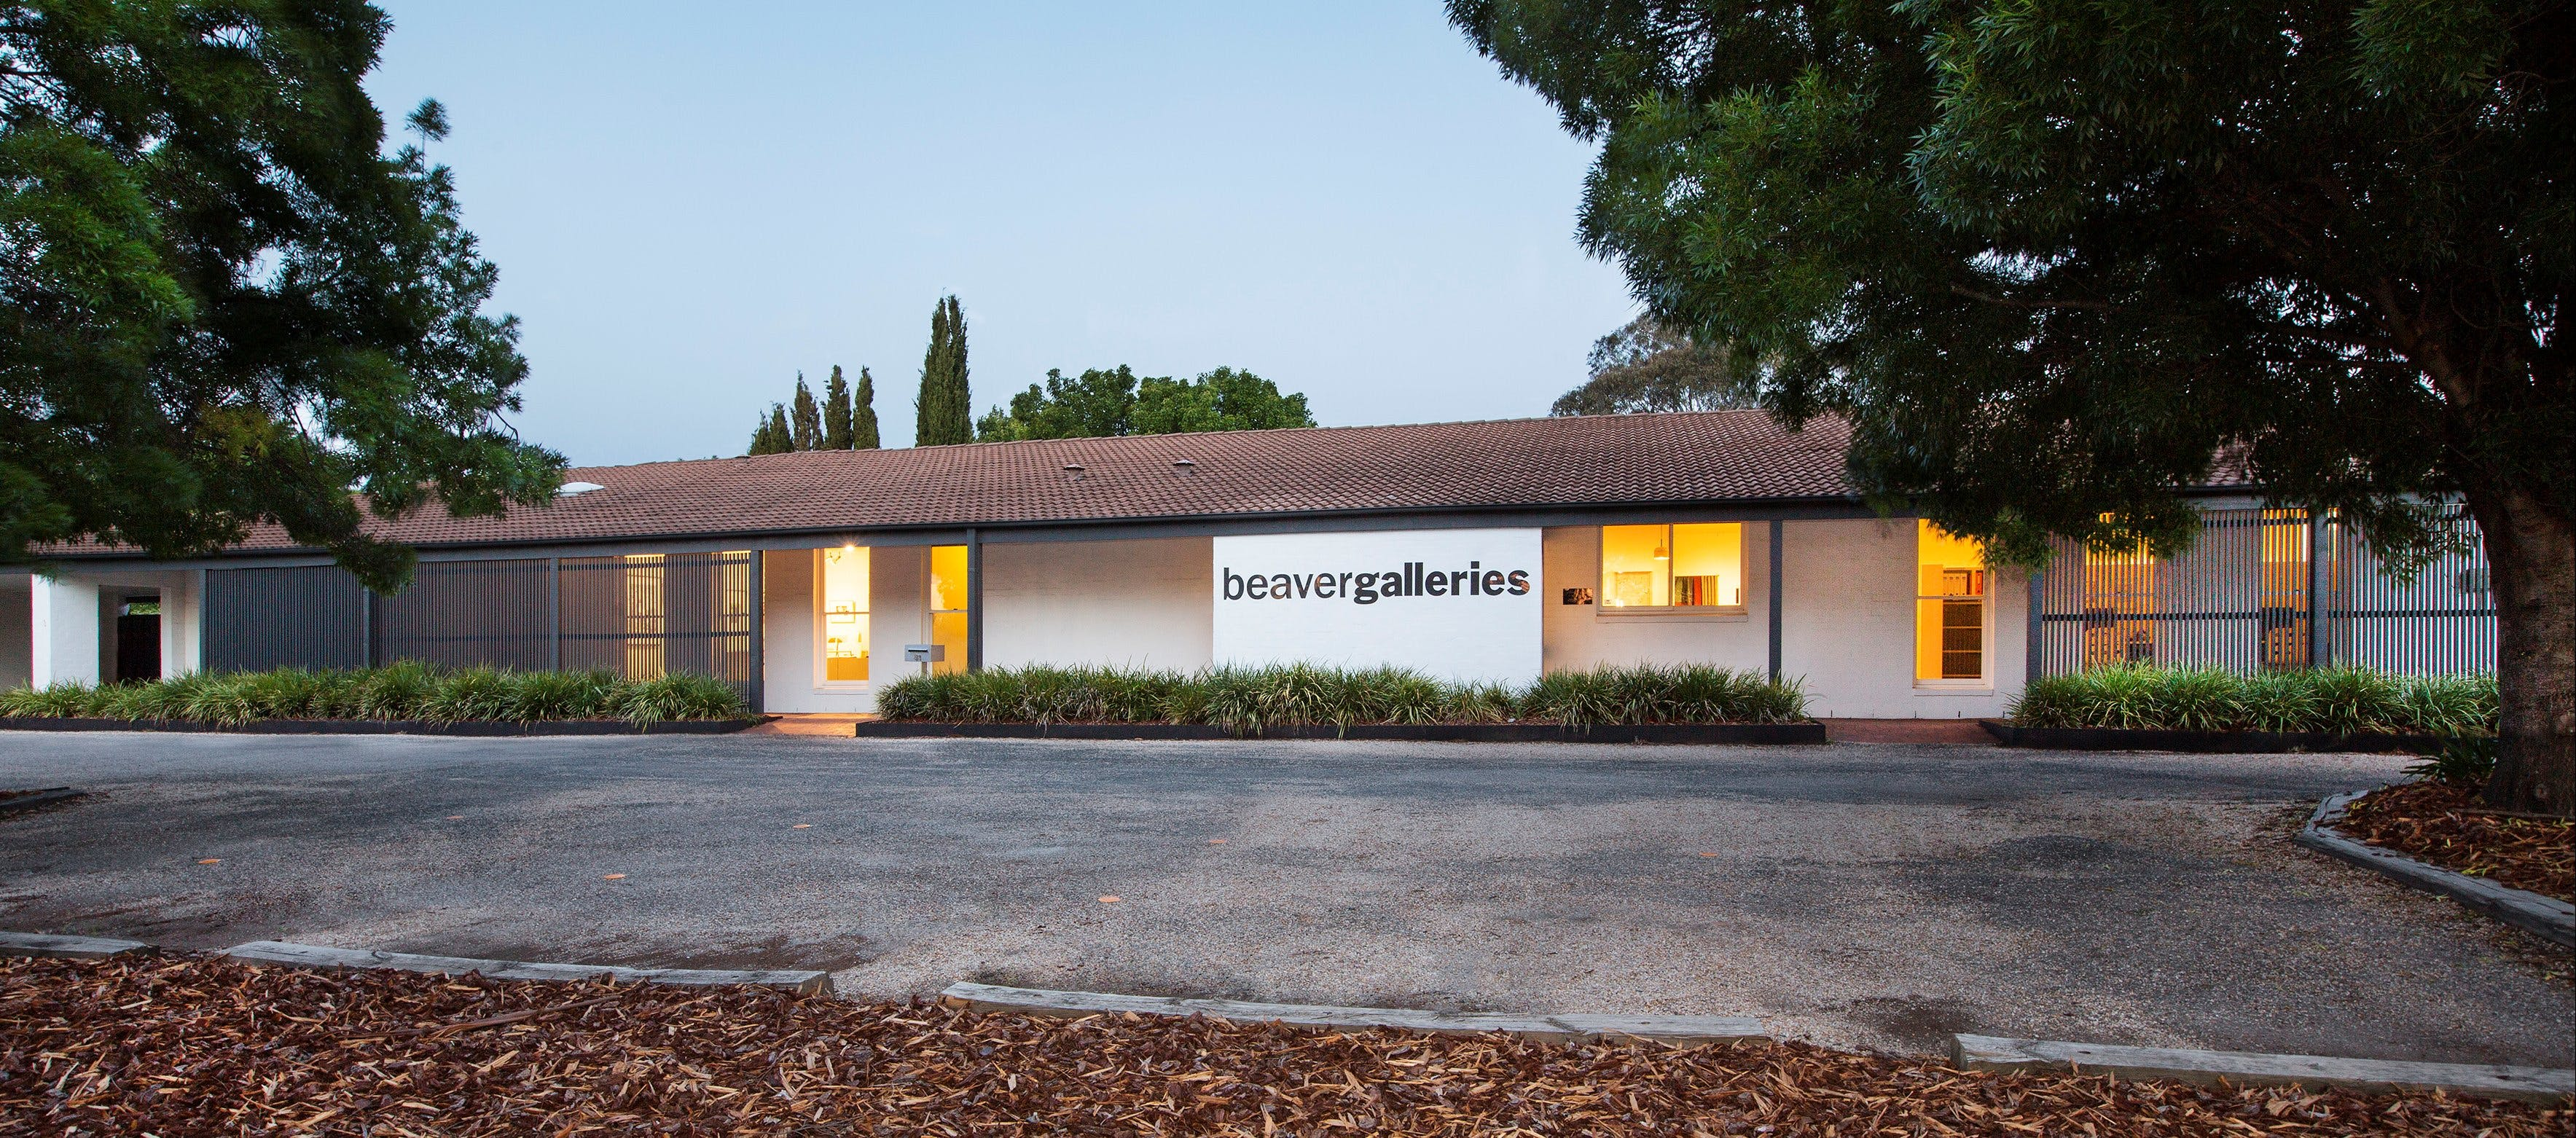 Beaver Galleries - Accommodation Ballina